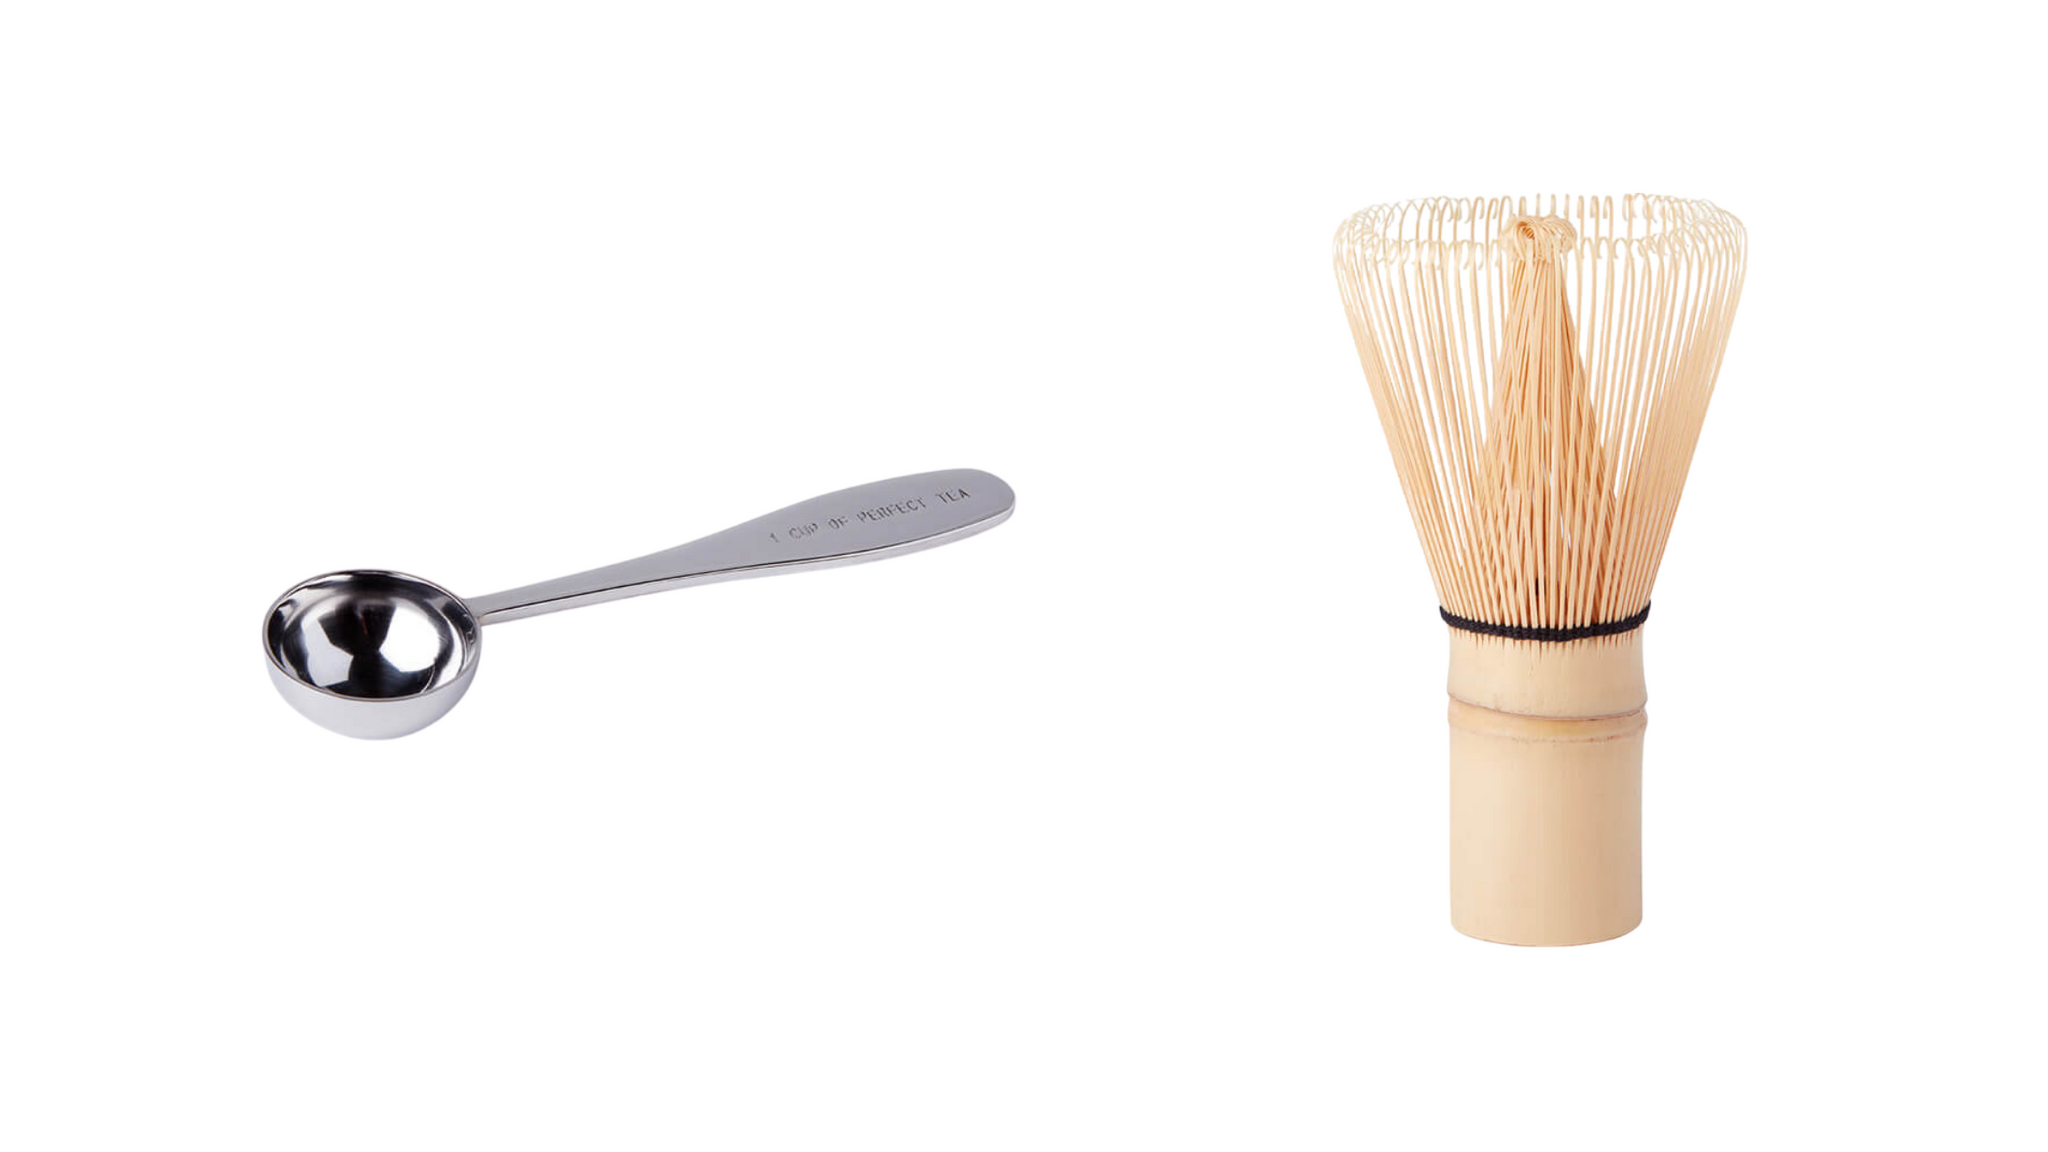 Tea Scoop and Matcha Whisk